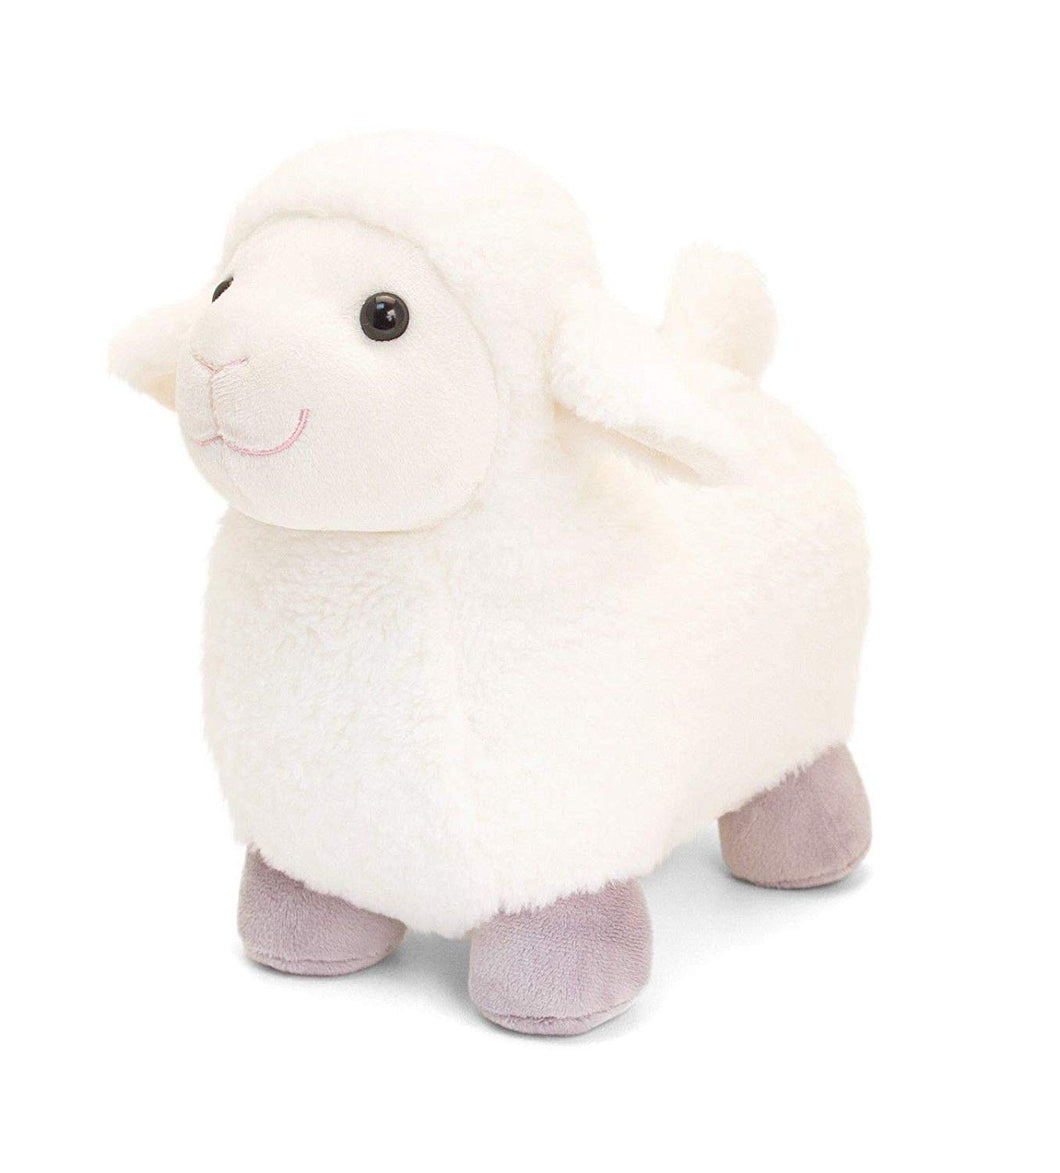 Keel Toys Standing Sheep (20cm) Soft Toy - Perfect alternative Easter Gift!